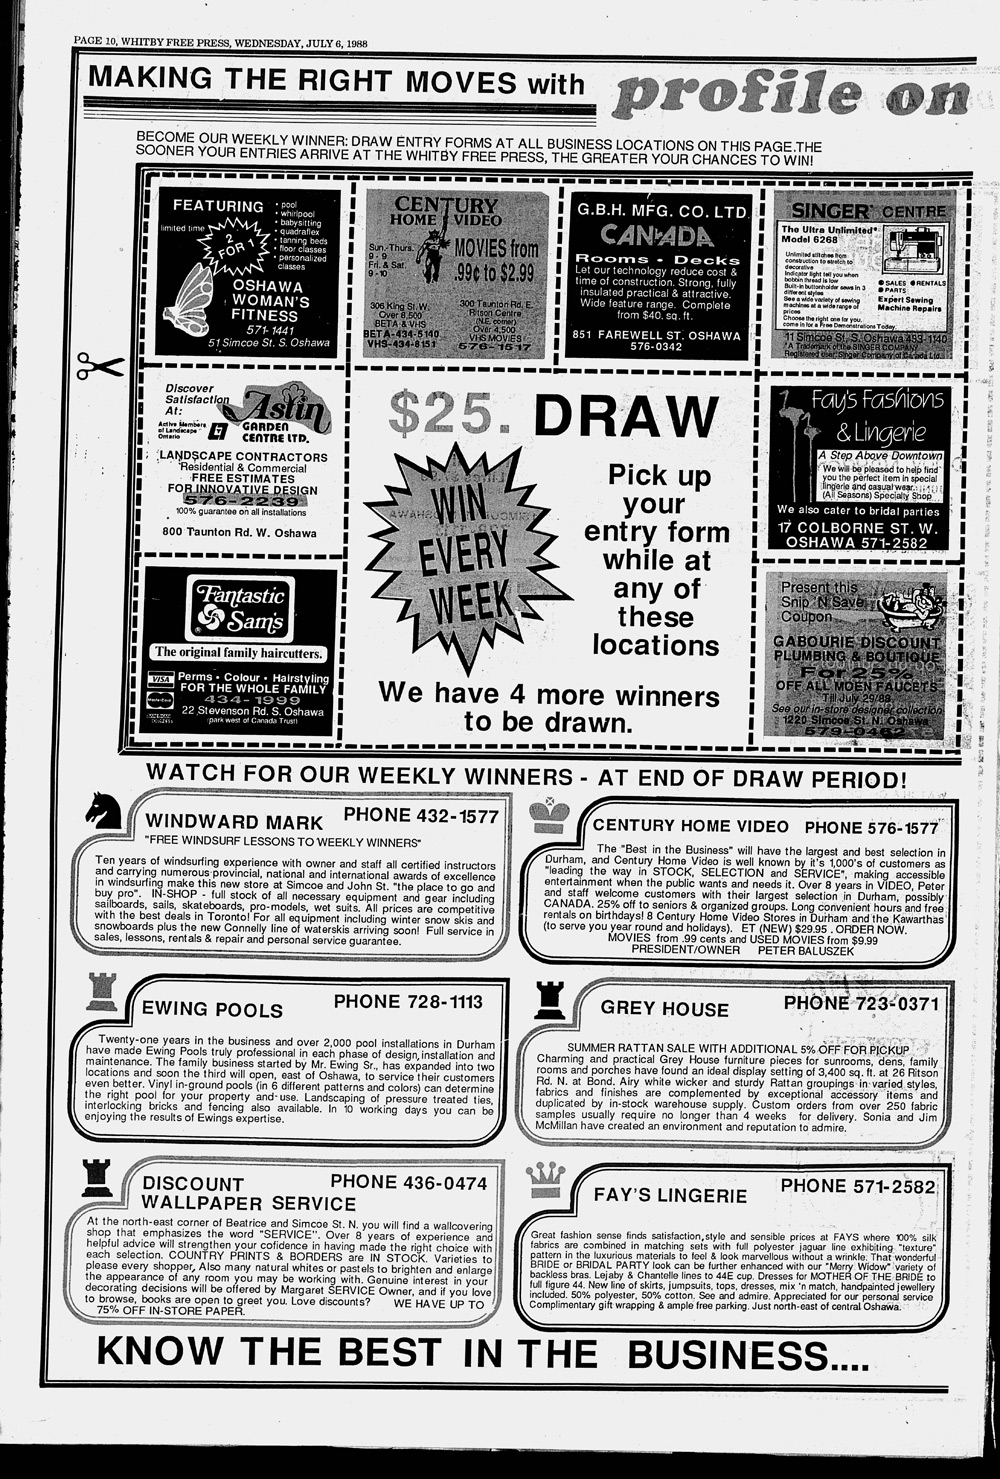 Whitby Free Press, 6 Jul 1988